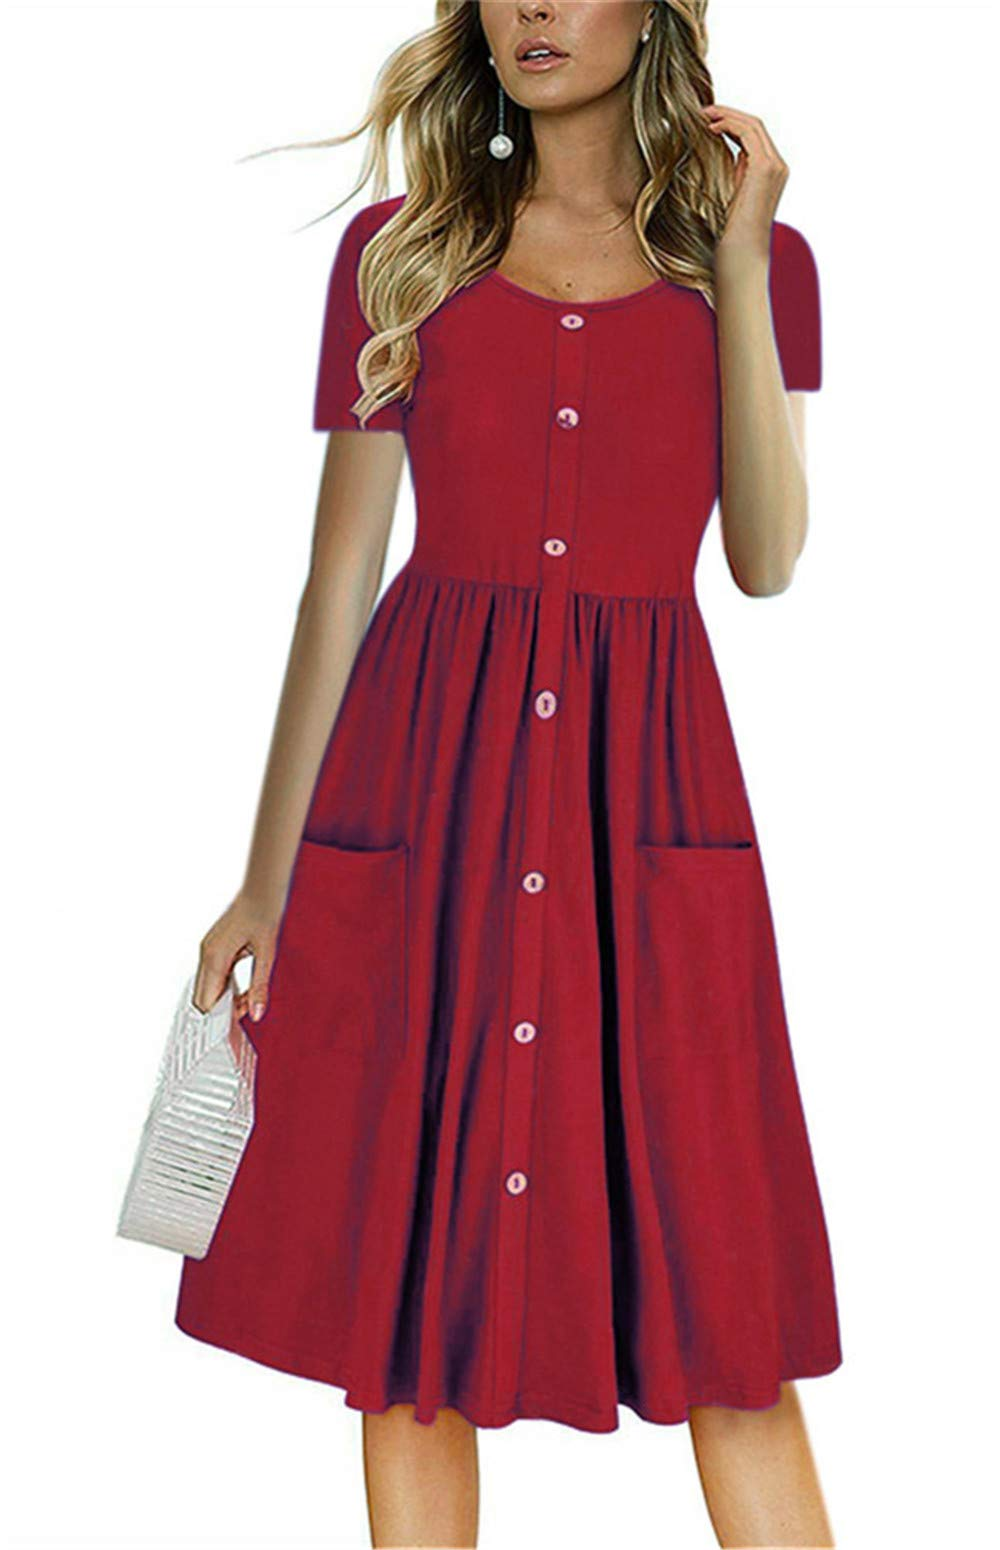 LAMISSCHE Womens Summer Casual Short Sleeve V Neck Button Down A-line Dress with Pockets(Wine Red,M) by LAMISSCHE